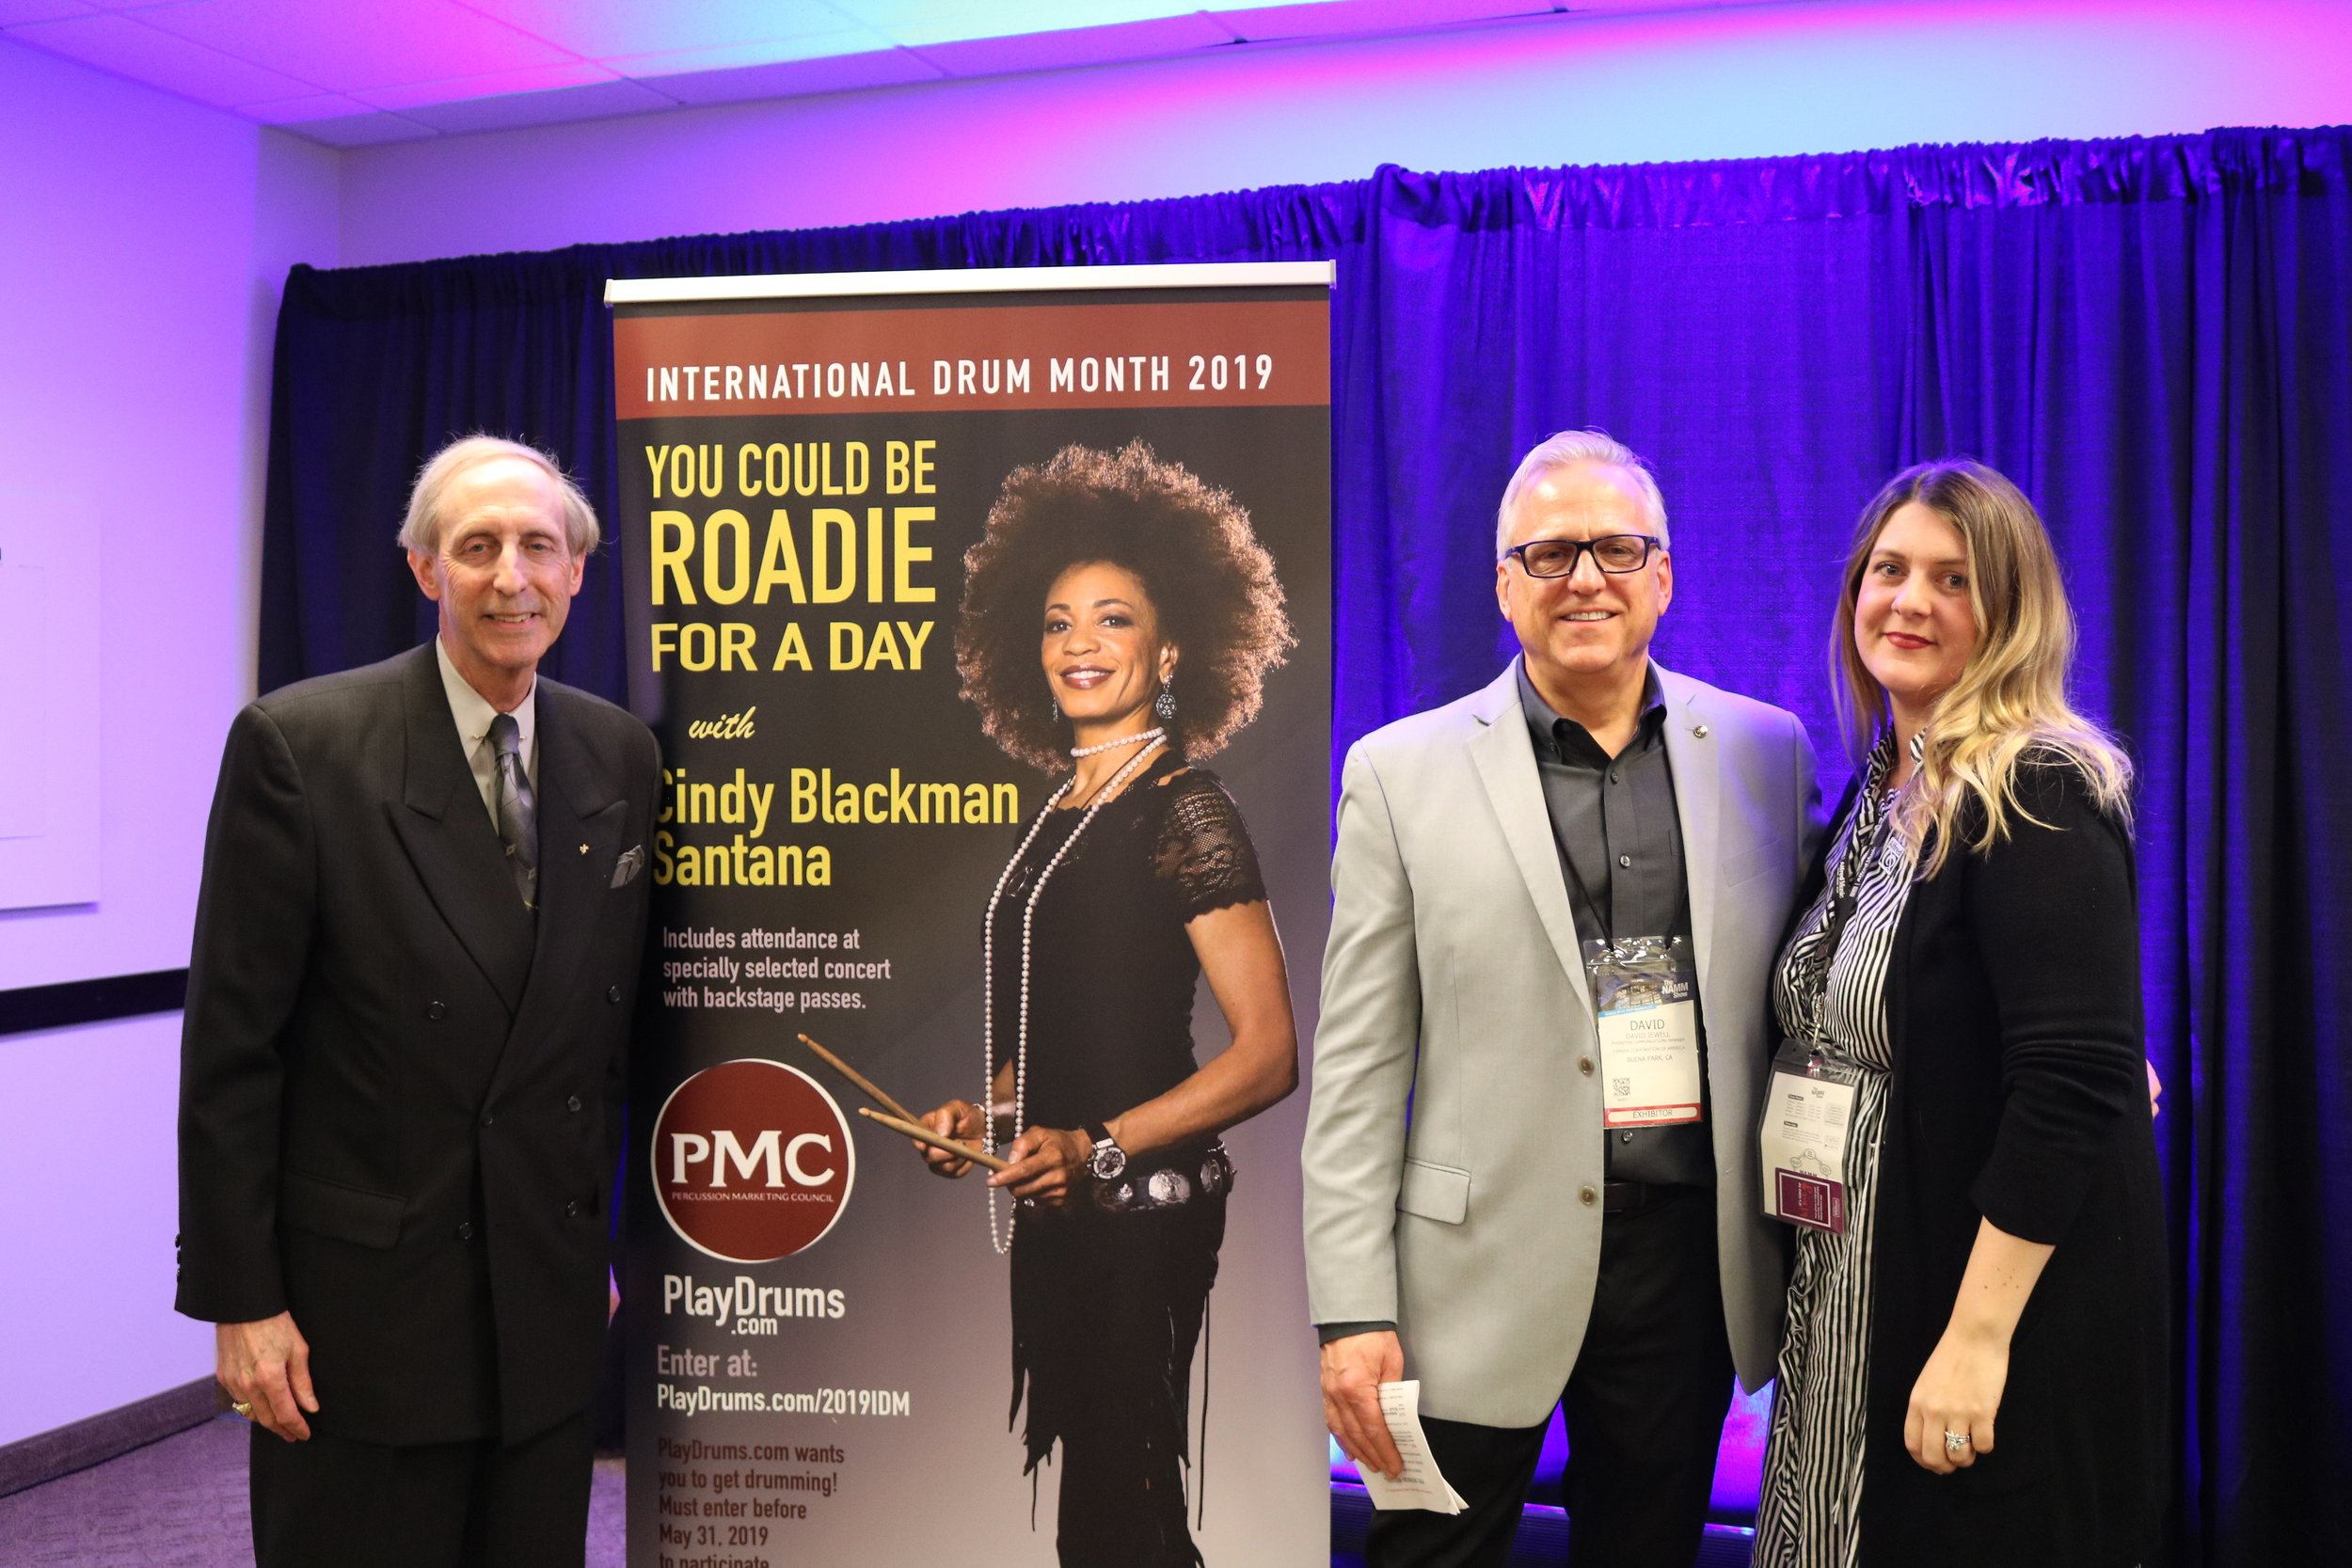 """2019 """"Roadie for a Day"""" POP display featuring grand prize celebrity drummer/host Cindy Blackman Santana. (Left to Right) PMC co-executive directors: Karl Dustman (Dustman & Associates), David Jewell (Yamaha Corporation), and Jennifer Paisley (Alfred). [Photo by Victoria Wasylak, courtesy of MMR Magazine.]"""